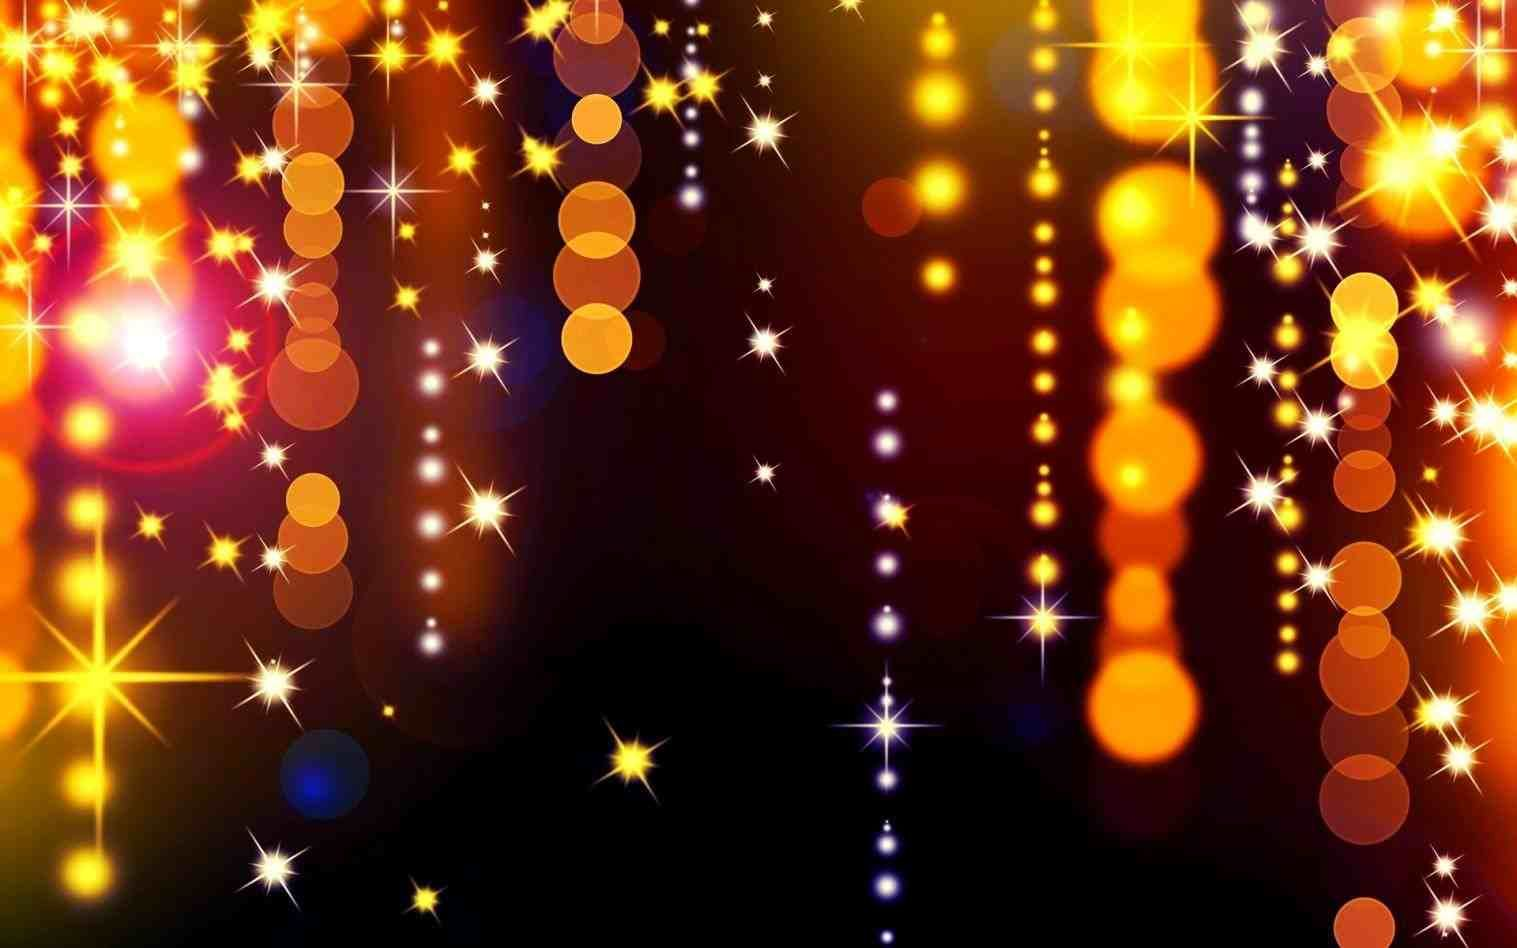 New Post Cute Christmas Lights Wallpaper Iphone